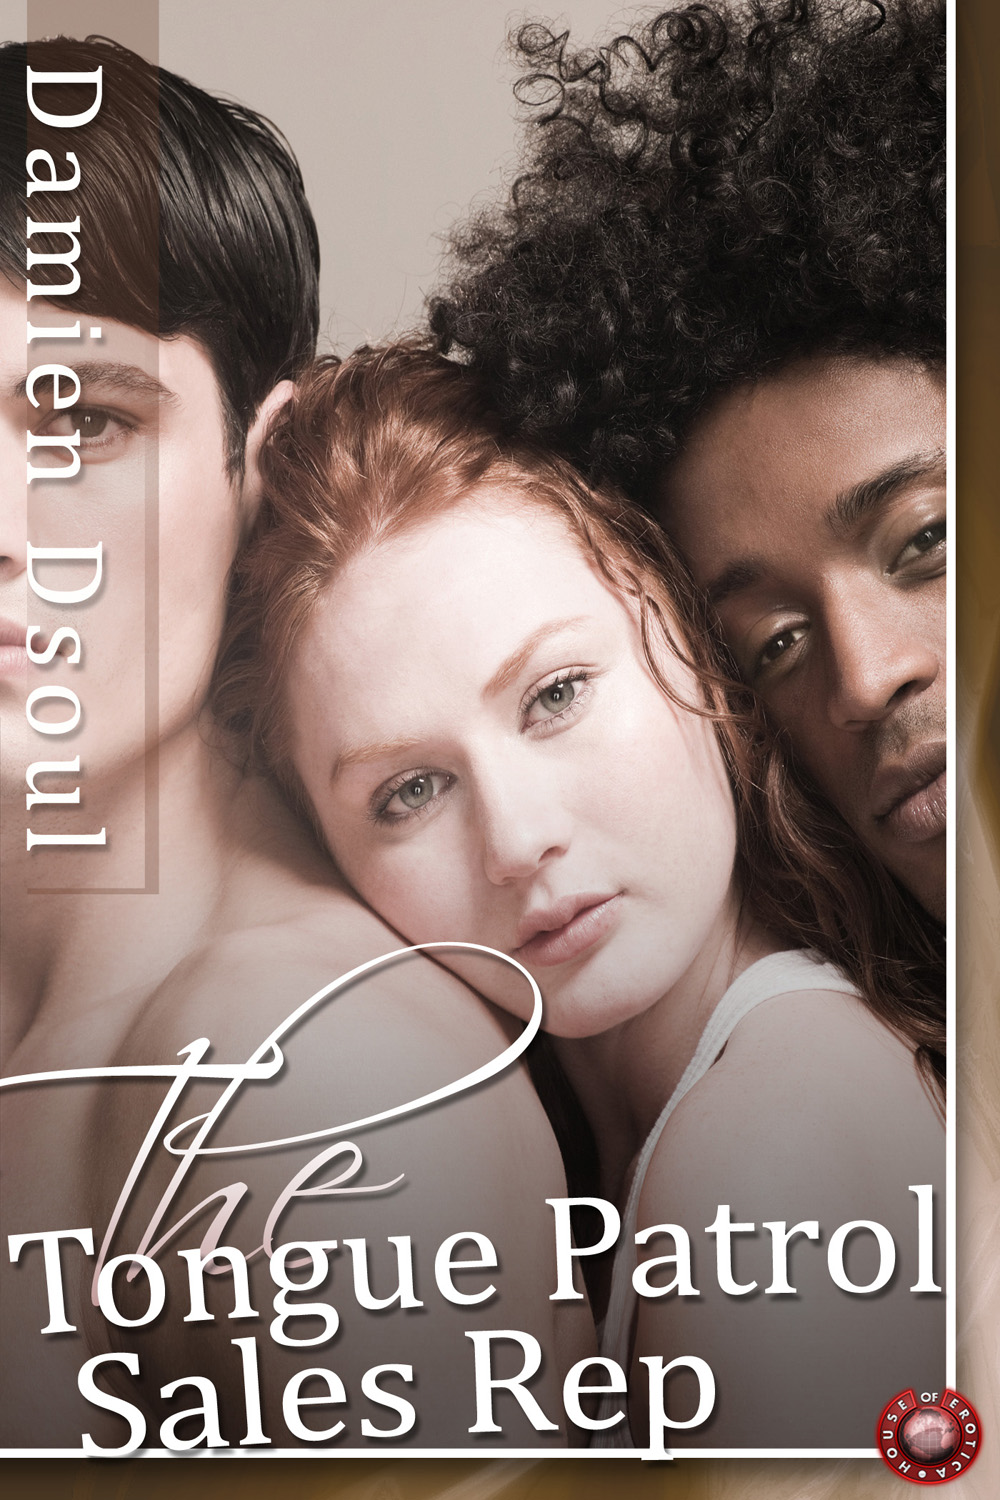 The Tongue Patrol Sales Rep (Kindle)